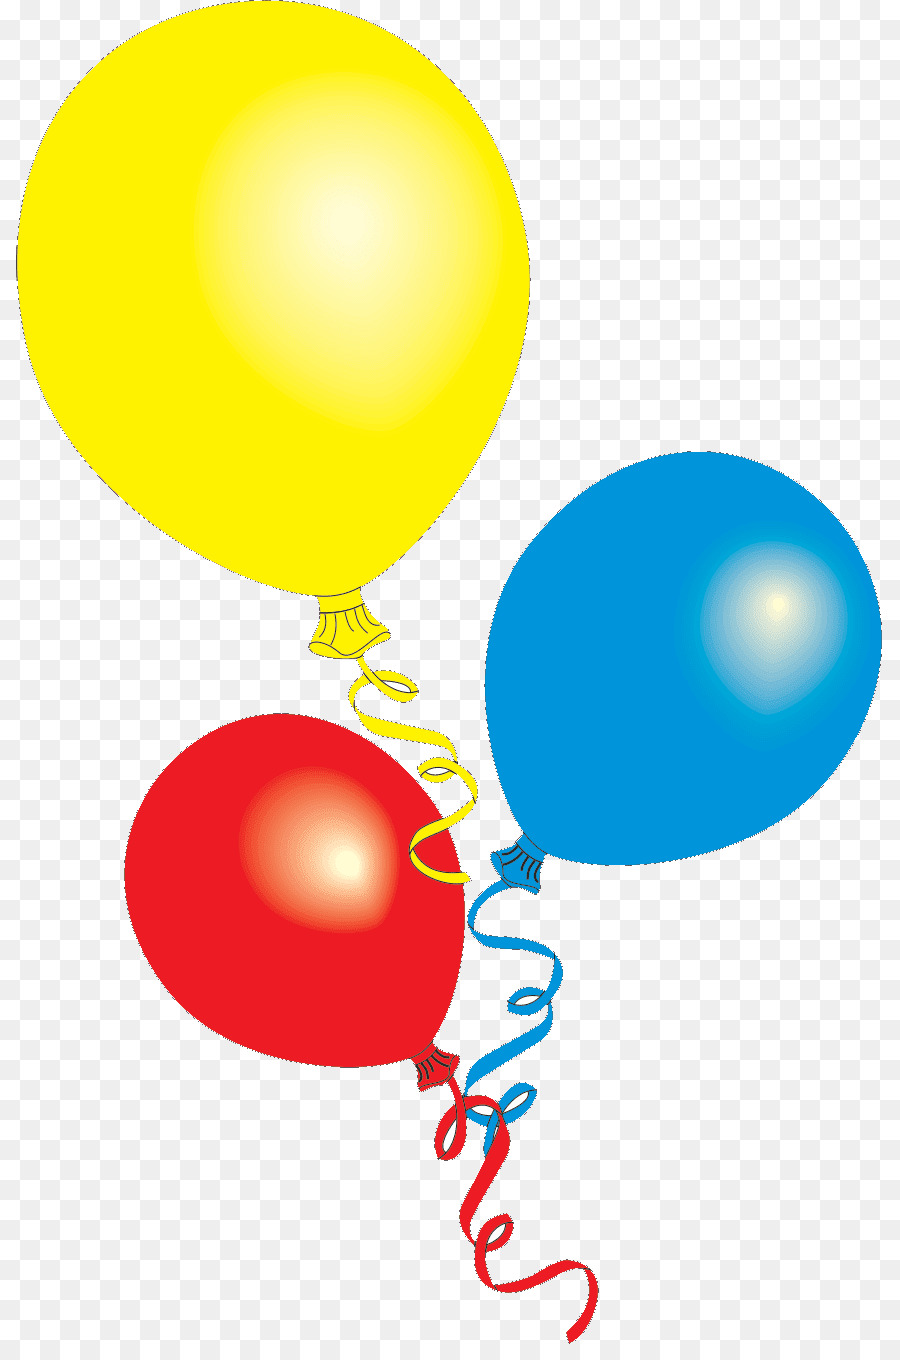 Bloons png & bloons transparent clipart free download bloons td.